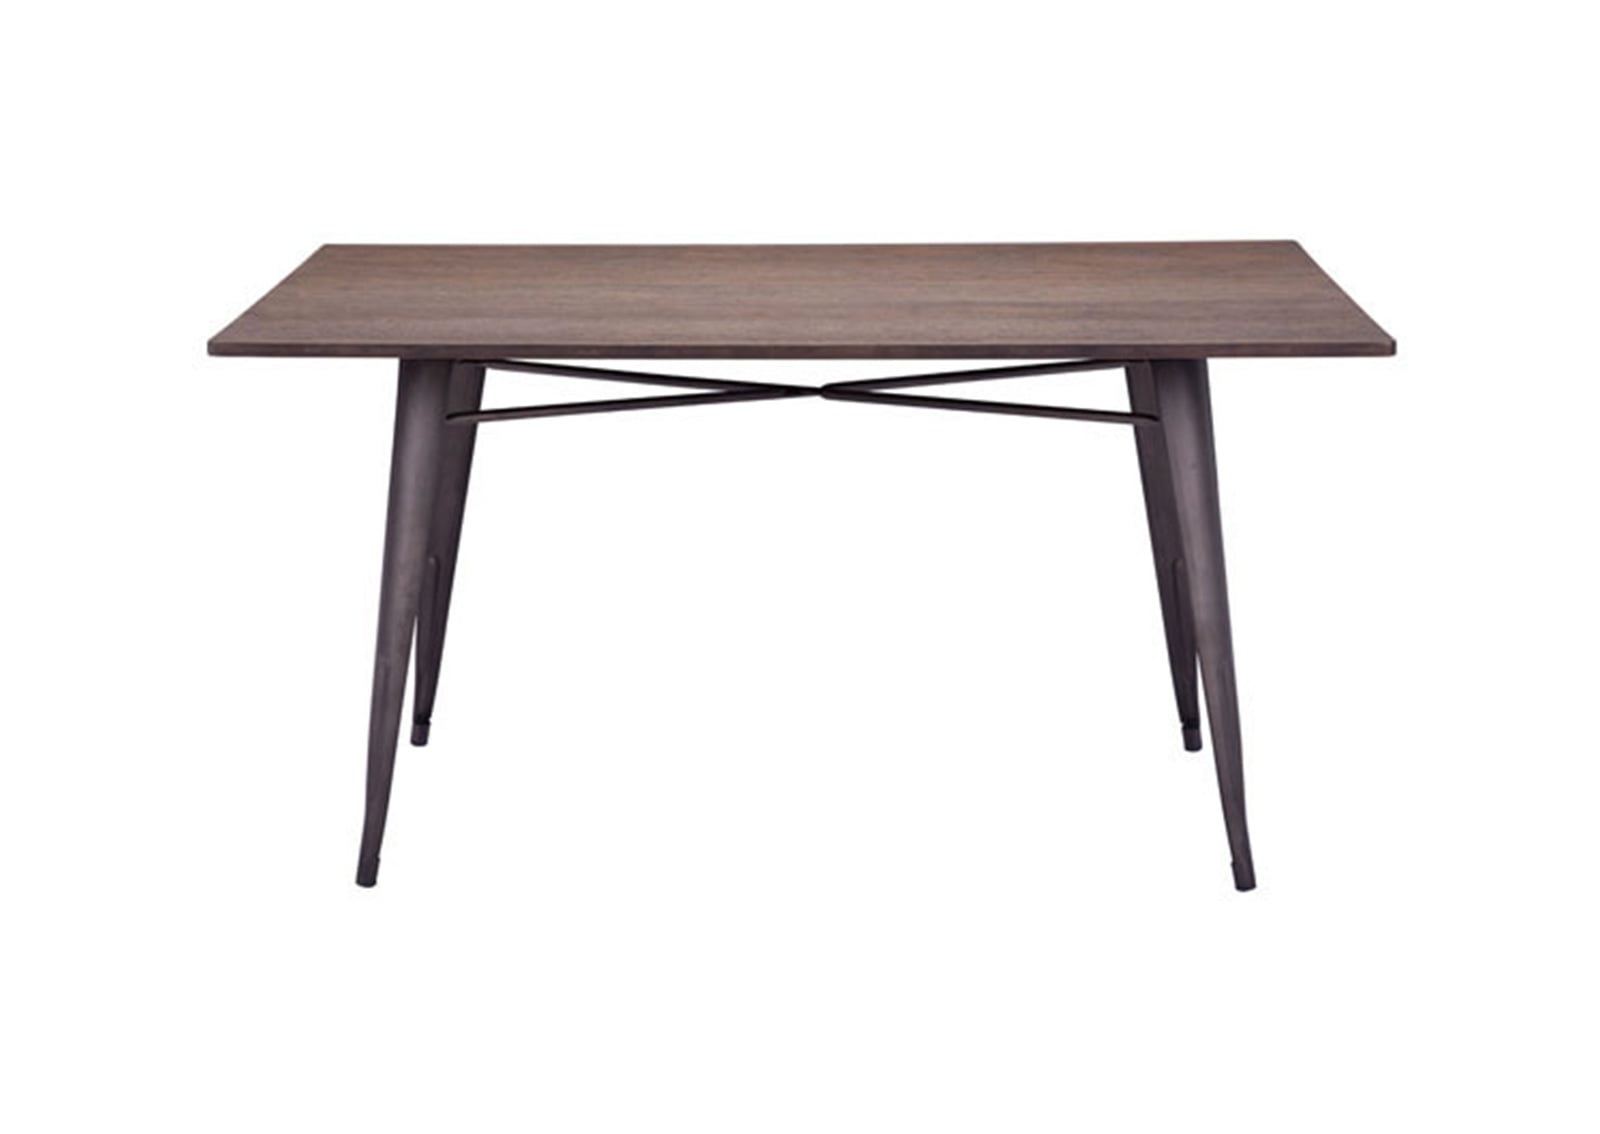 Titus Rectangular Dining Table Rustic Wood FurnishPlus : Titus Rectangular Dining Table Rustic Wood3 from furnishplus.ca size 1600 x 1134 jpeg 76kB